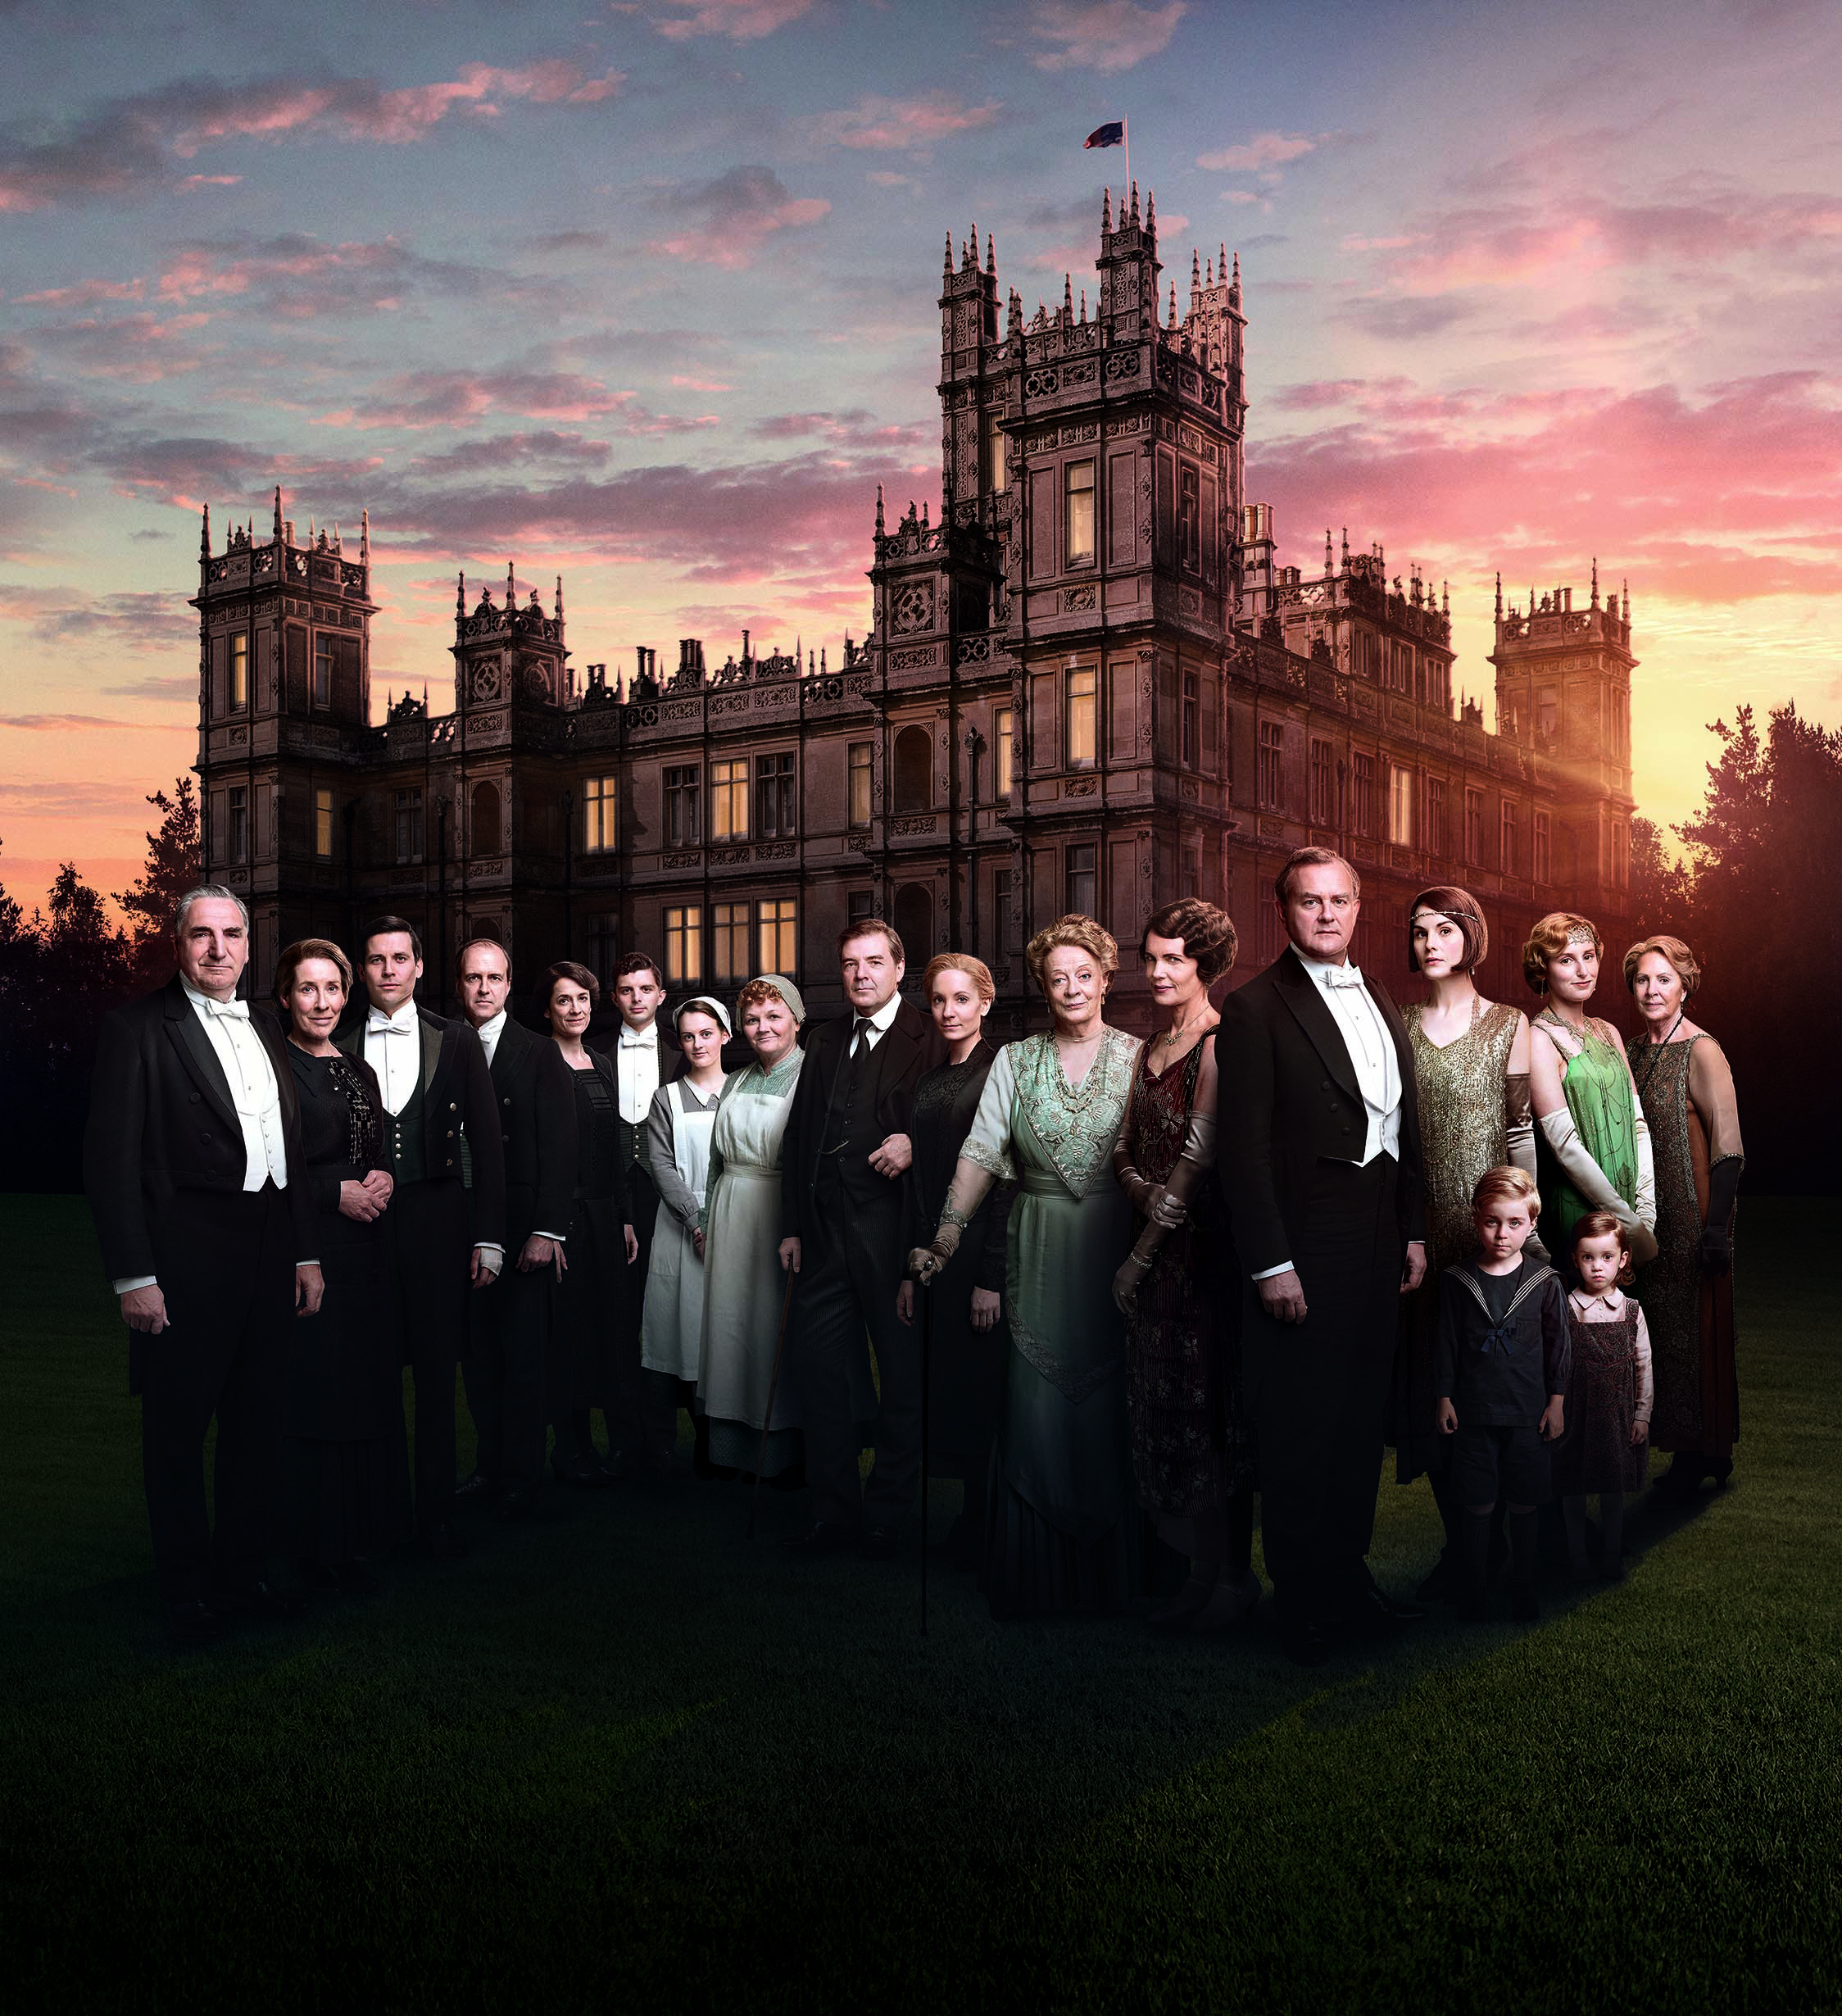 Downton Abbey Season 6 Cast Image